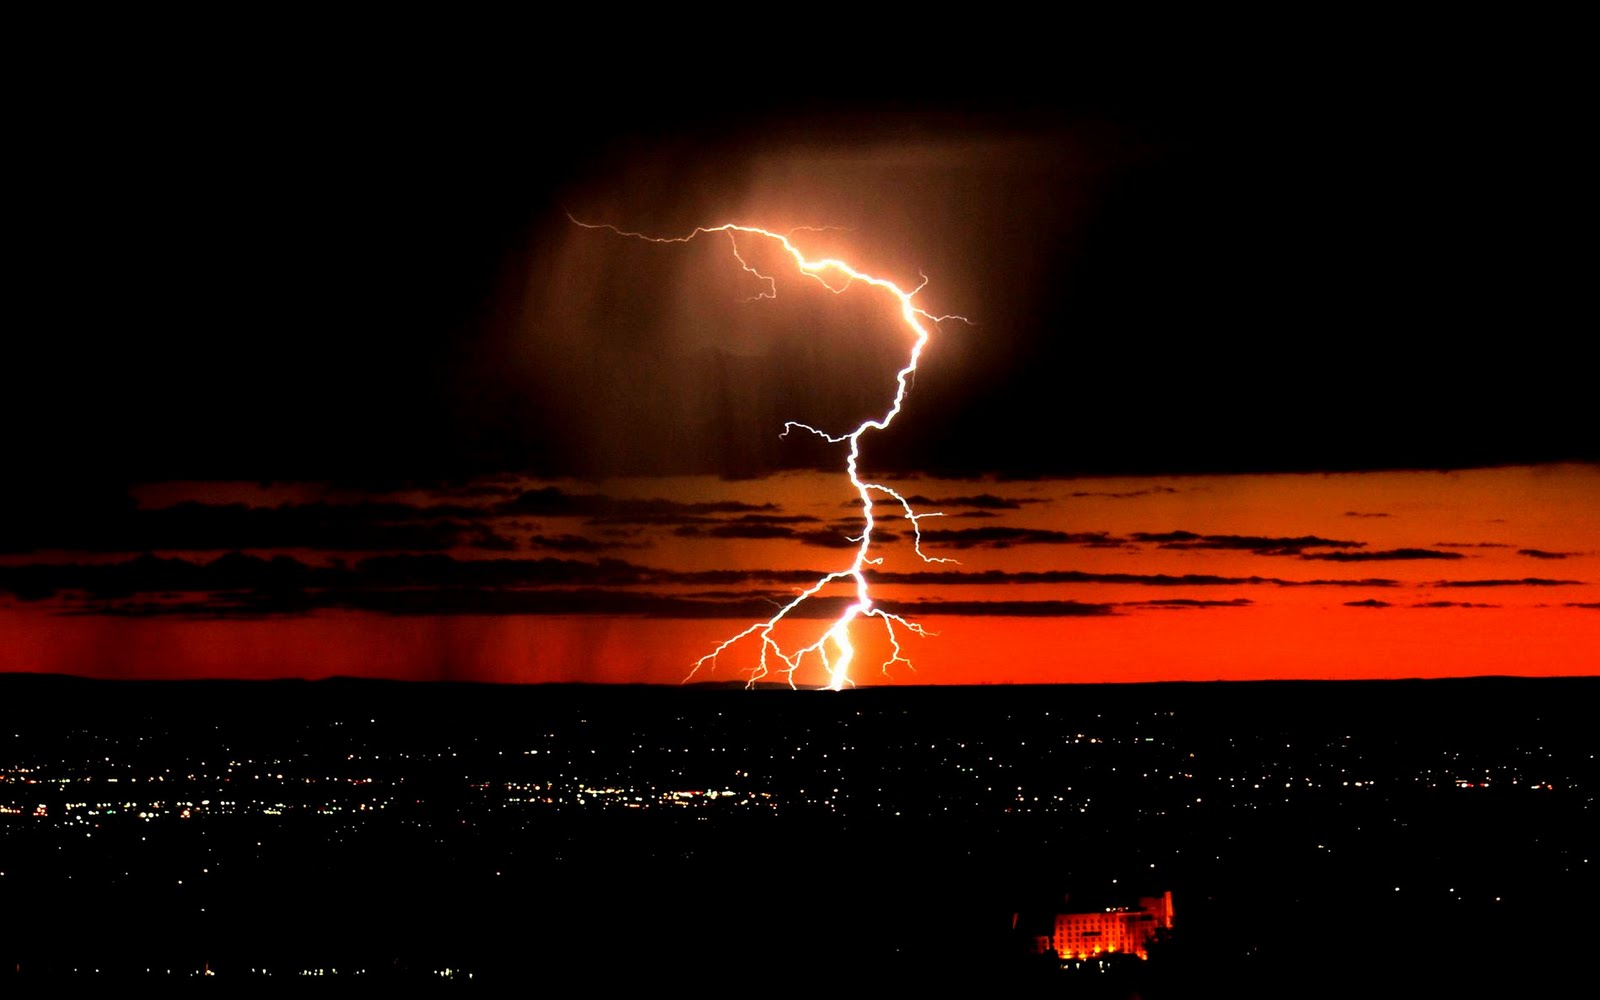 Wallpapers ⇒ Landscape ⇒ Thunderstorm Wallpapers